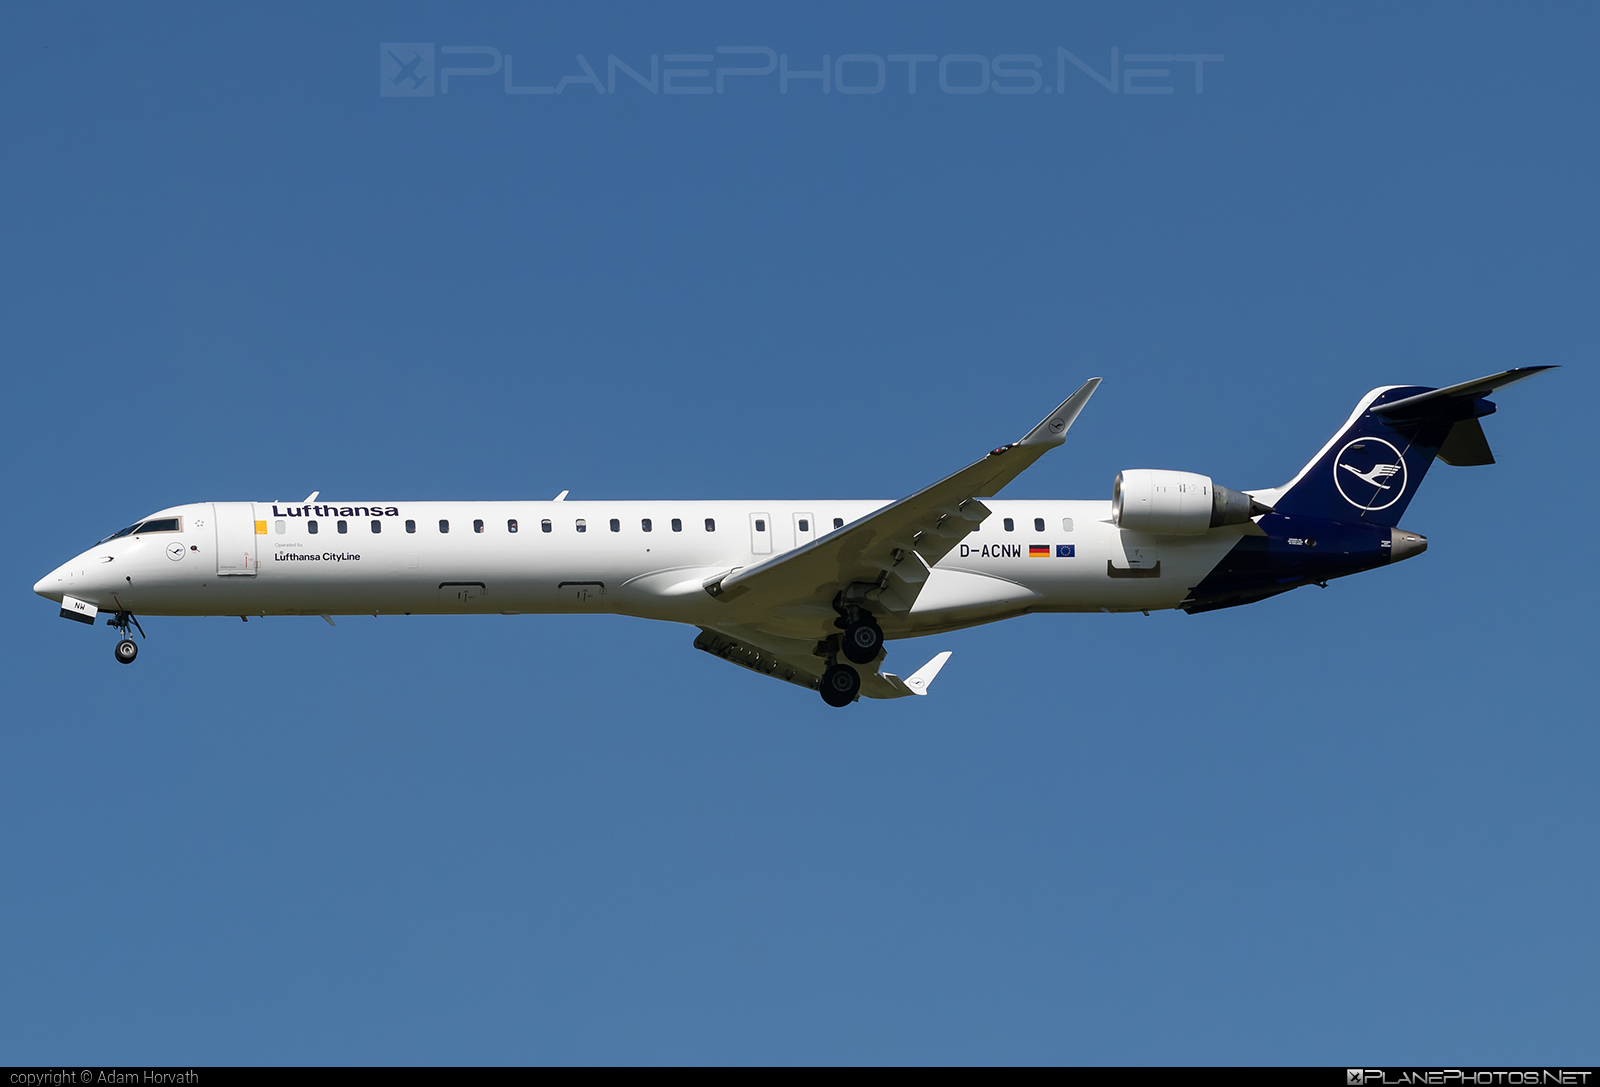 Bombardier CRJ900LR - D-ACNW operated by Lufthansa CityLine #bombardier #crj900 #crj900lr #lufthansa #lufthansacityline